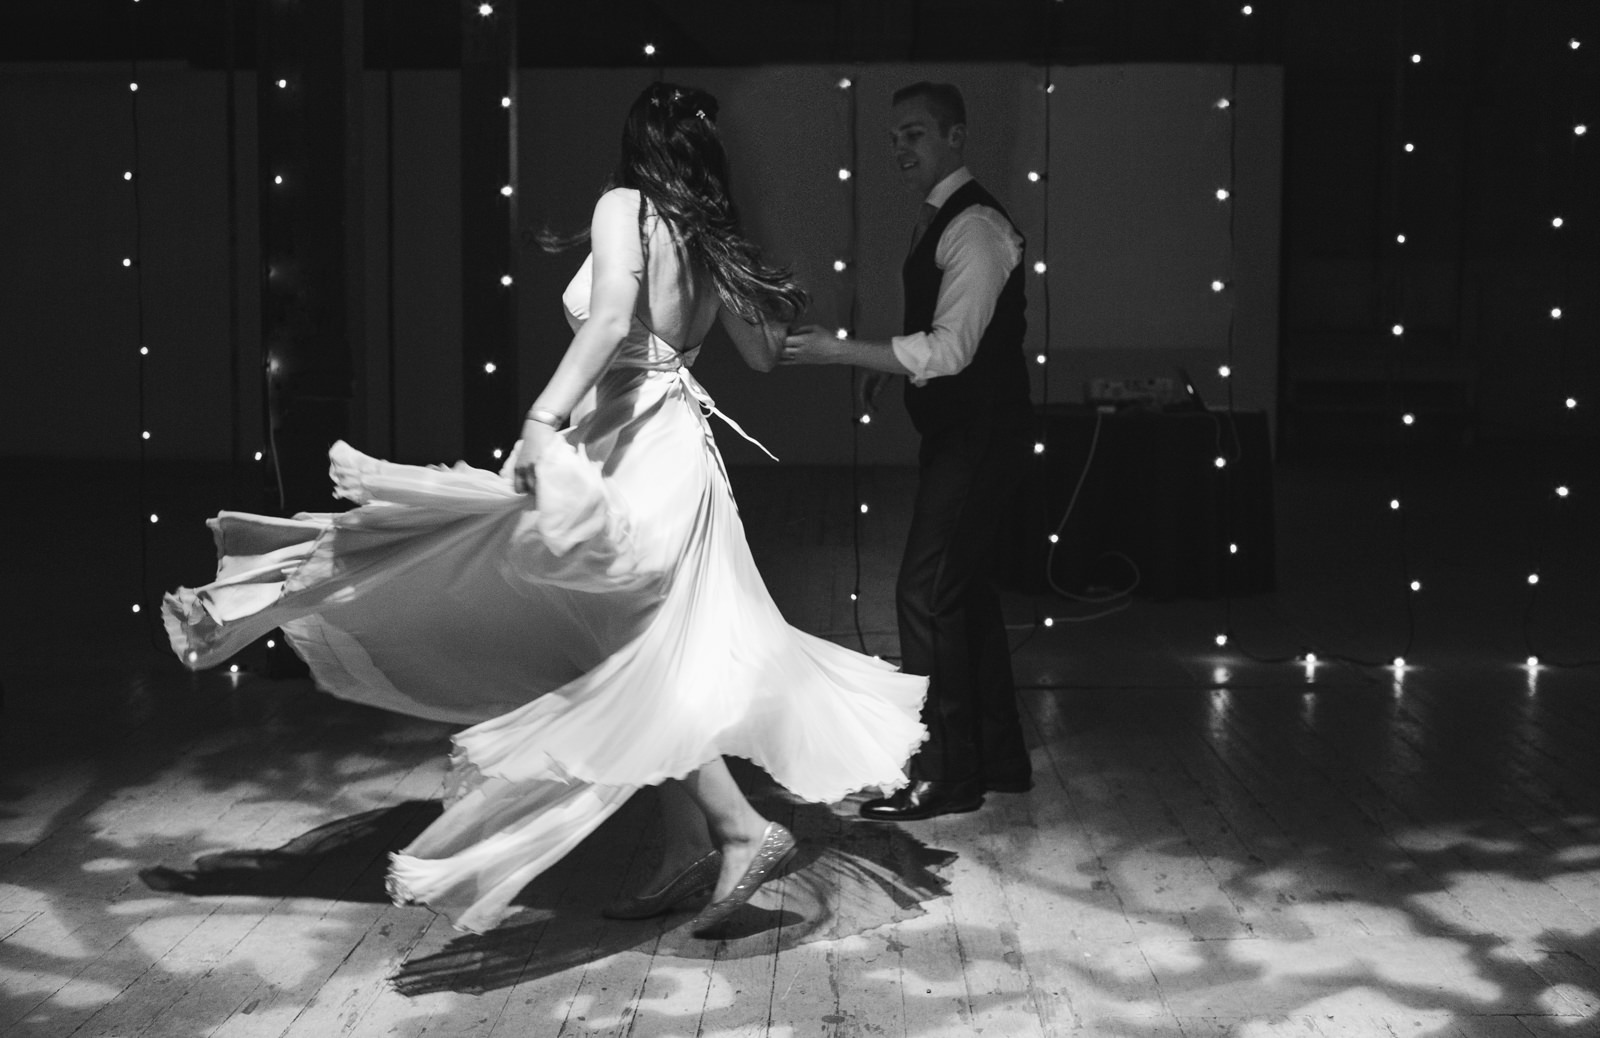 a bride and groom's dramatic first dance at their wedding in portland